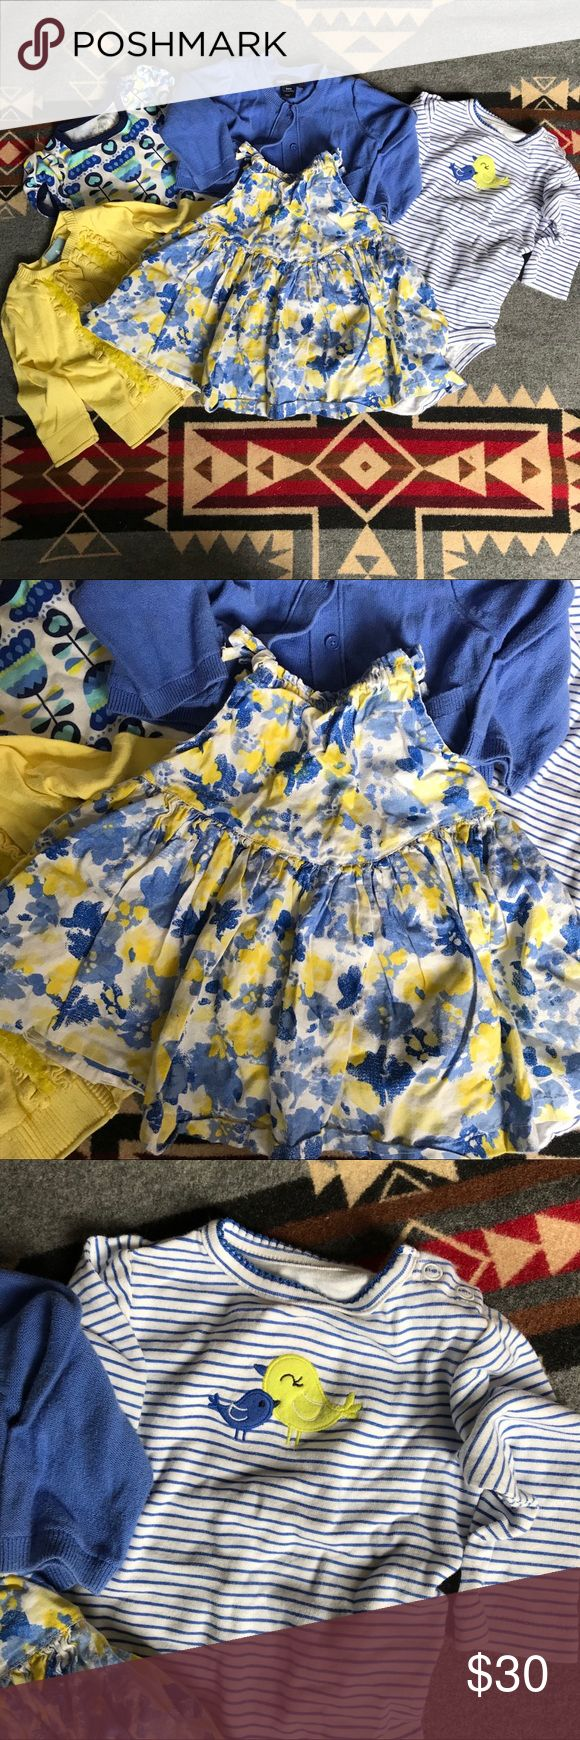 Baby bundle lot size 3-6 month SO CUTE  How sweet are these? I loved these on my little girl.  Blues and yellows adorn this bundle of clothing.  1 dress (gap outlet) 2 cardigans (Gap and Gap outlet)  1 Carters onsie 1 old navy onsie Matching Sets